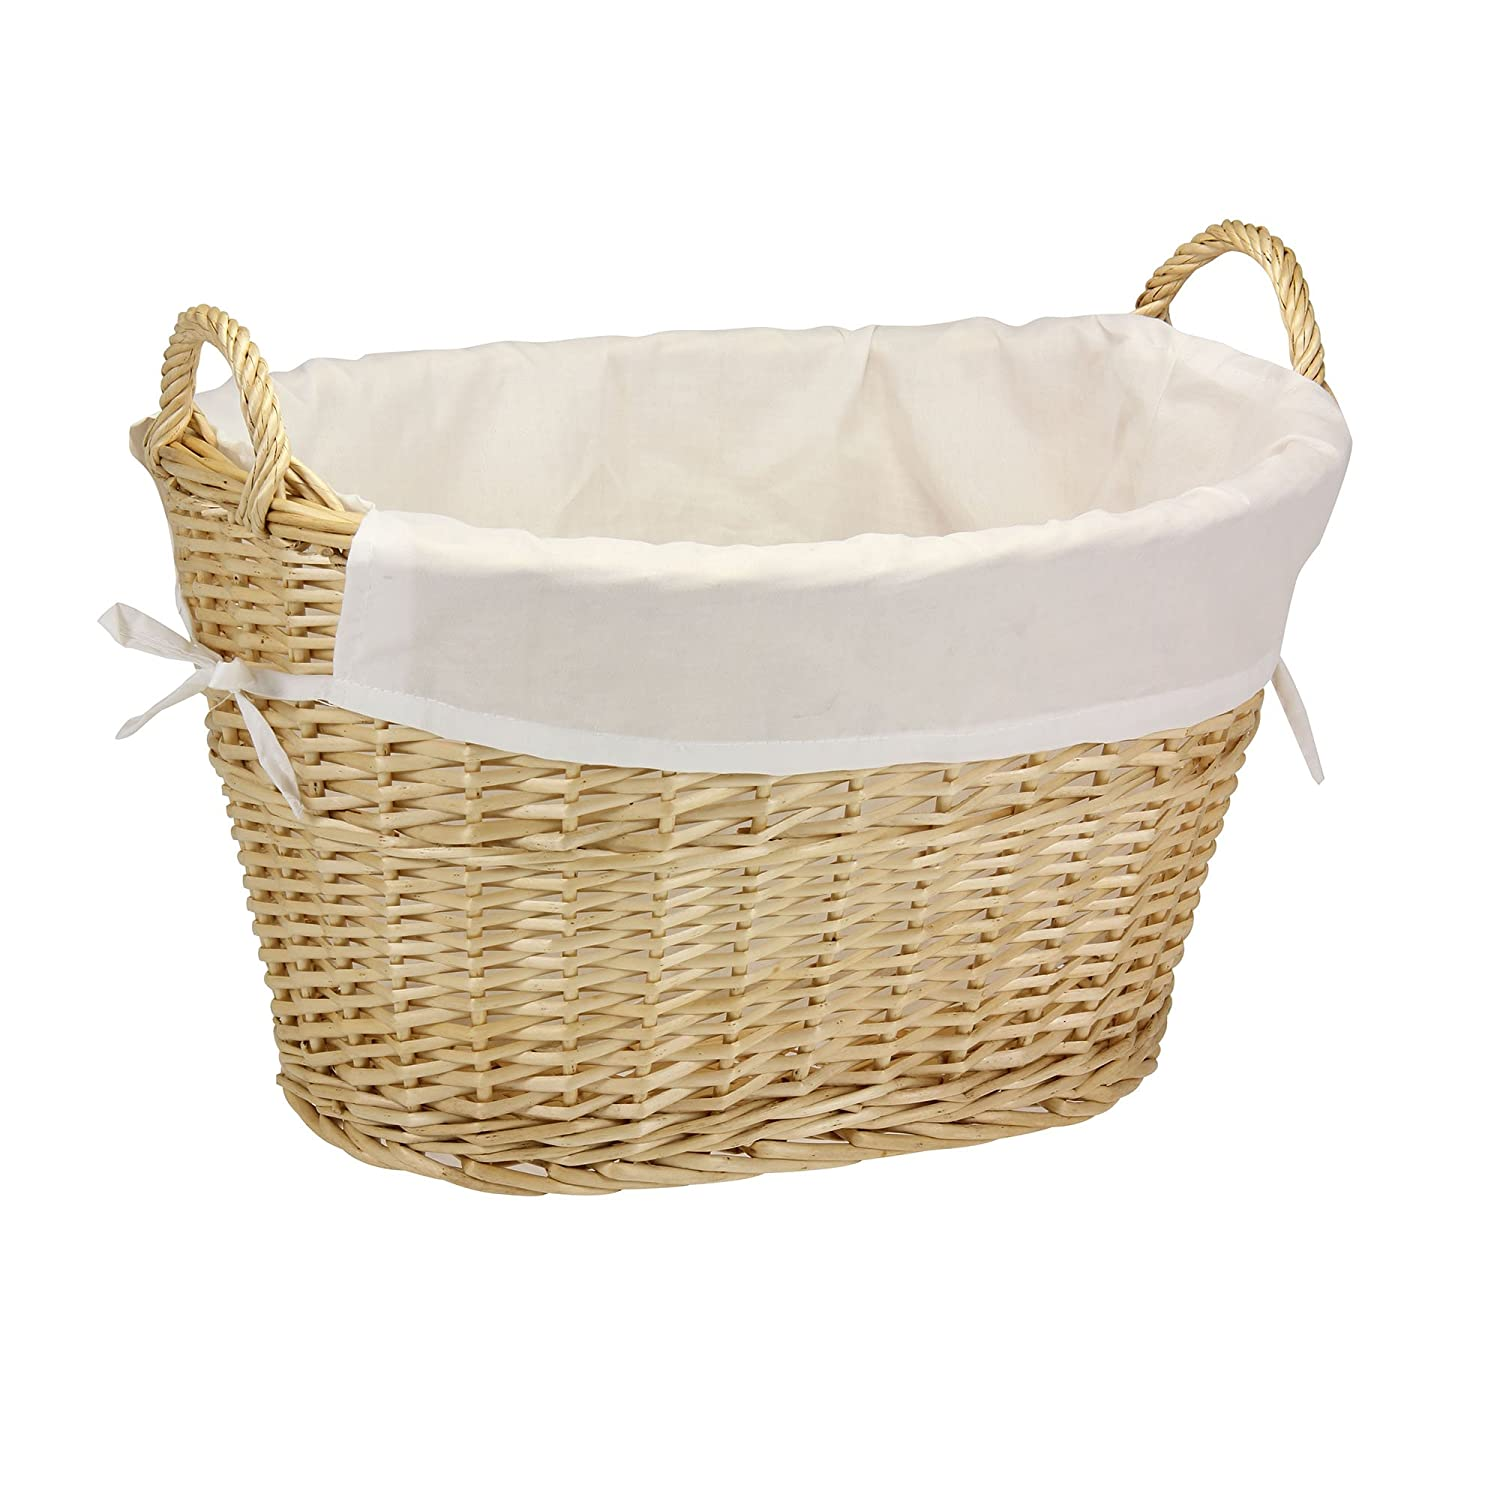 White wicker baskets with handle - Amazon Com Household Essentials Ml 5569 Willow Wicker Laundry Basket With Handles And Liner Natural Brown Home Kitchen